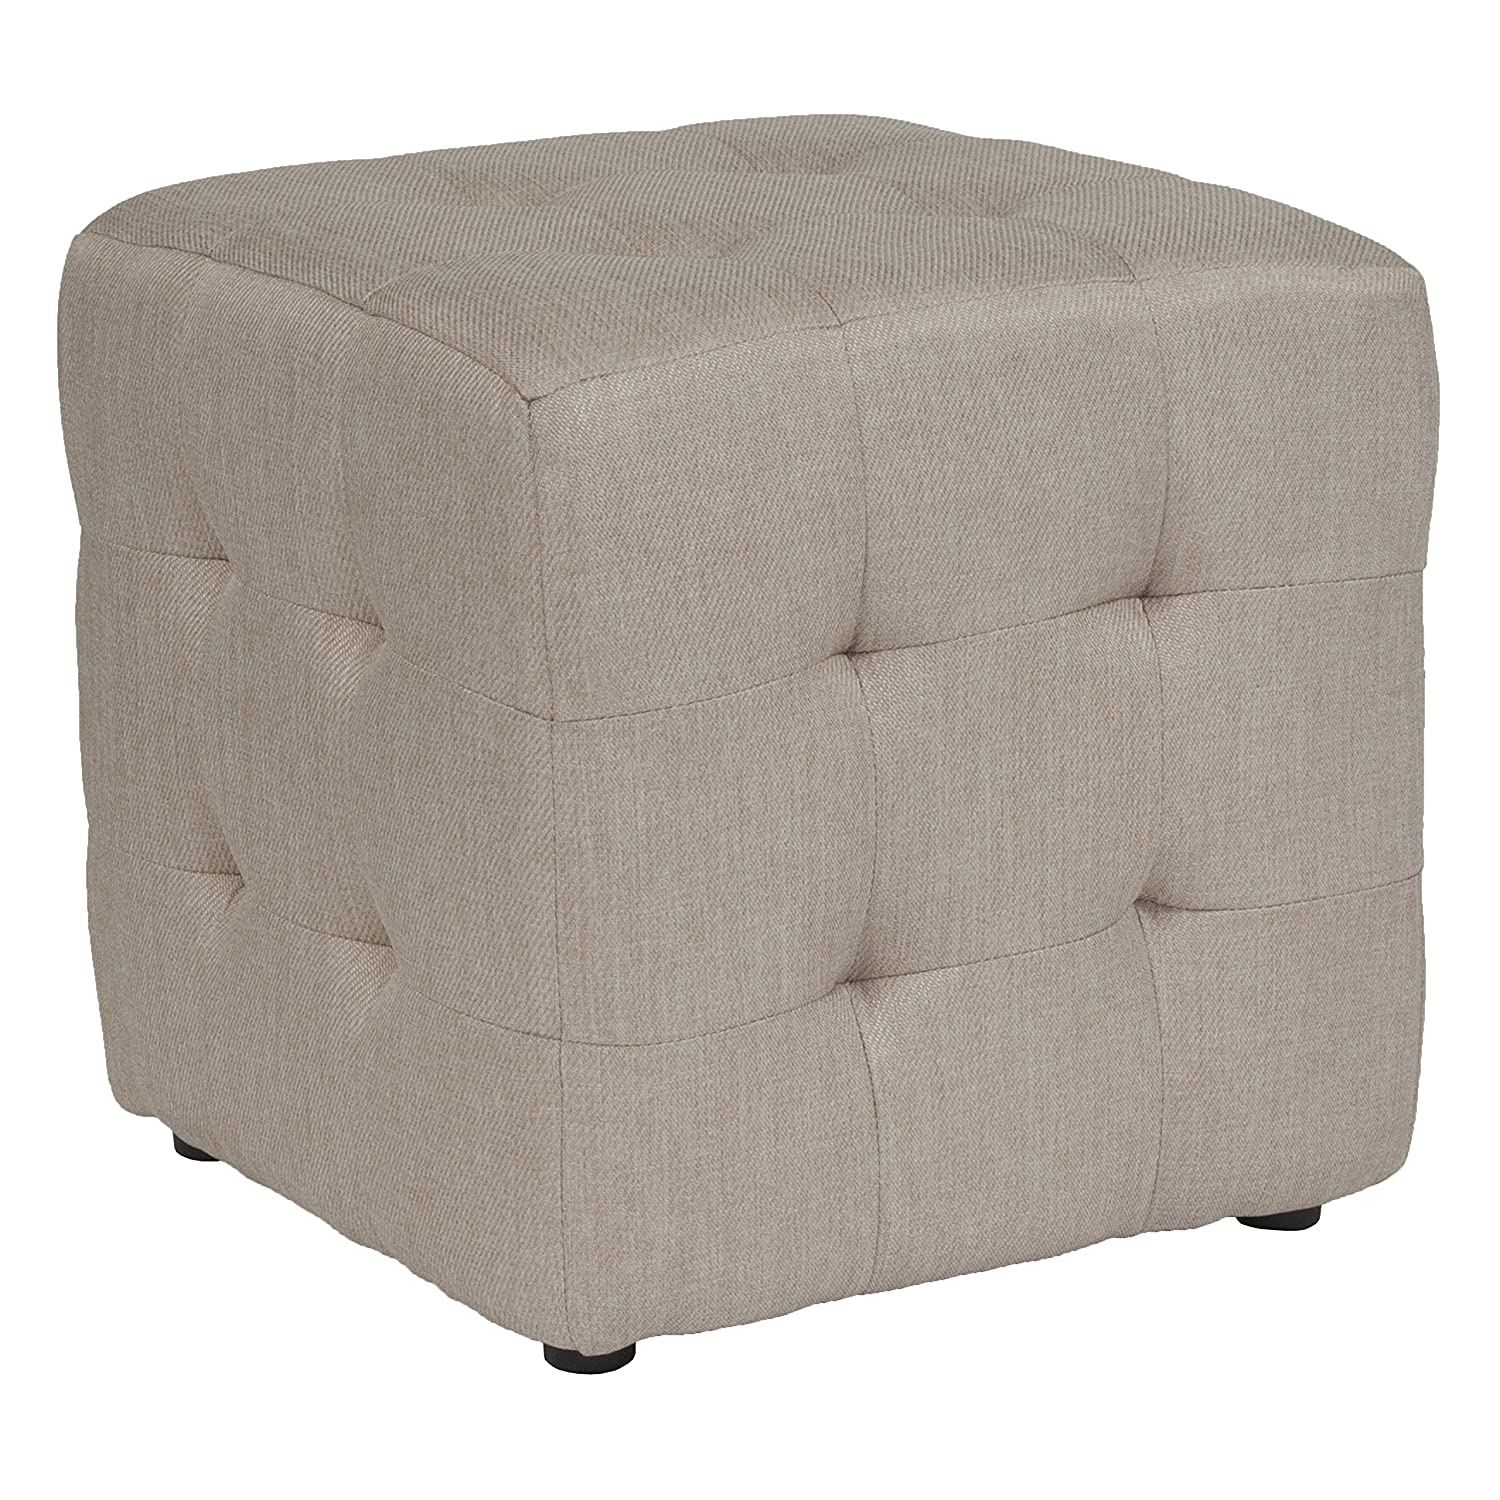 Awe Inspiring Amazon Com Grid Tufted Upholstered Cube Ottoman Pouf In Cjindustries Chair Design For Home Cjindustriesco